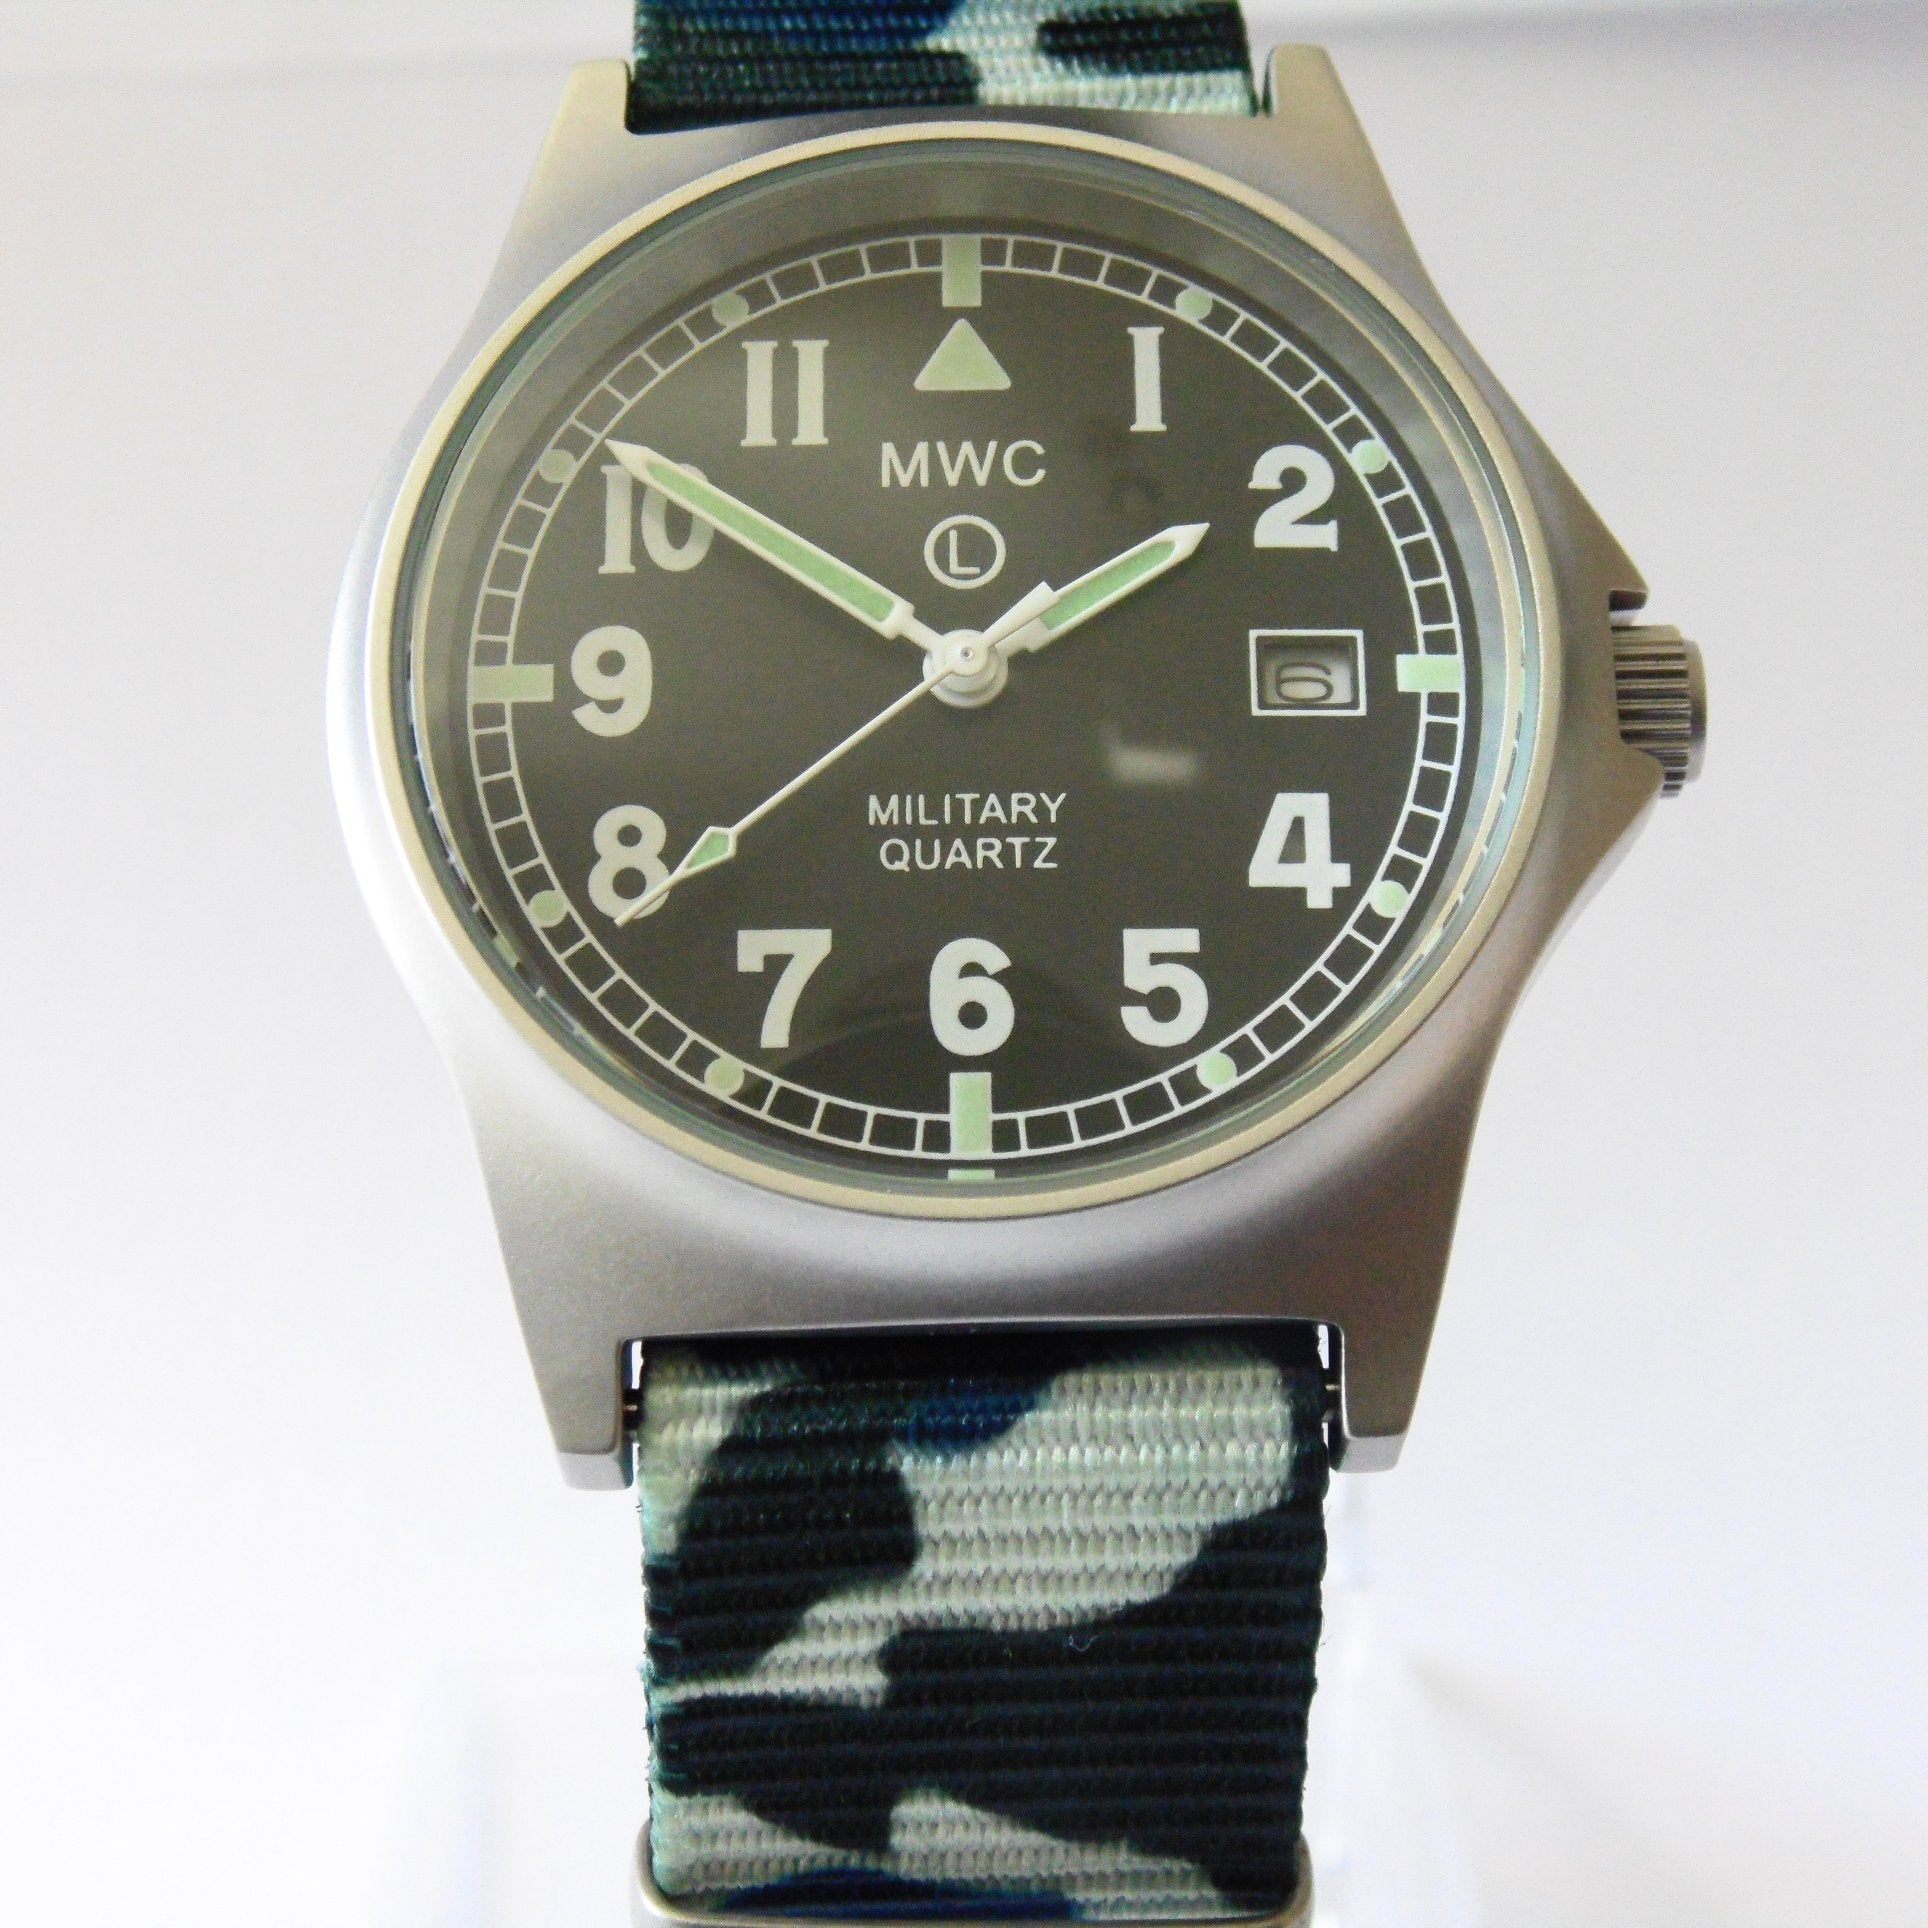 MWC G10 LM Military Watch (Camouflage Nato Strap) - Watchfinder General - UK suppliers of Russian Vostok Parnis Watches MWC G10  - 1